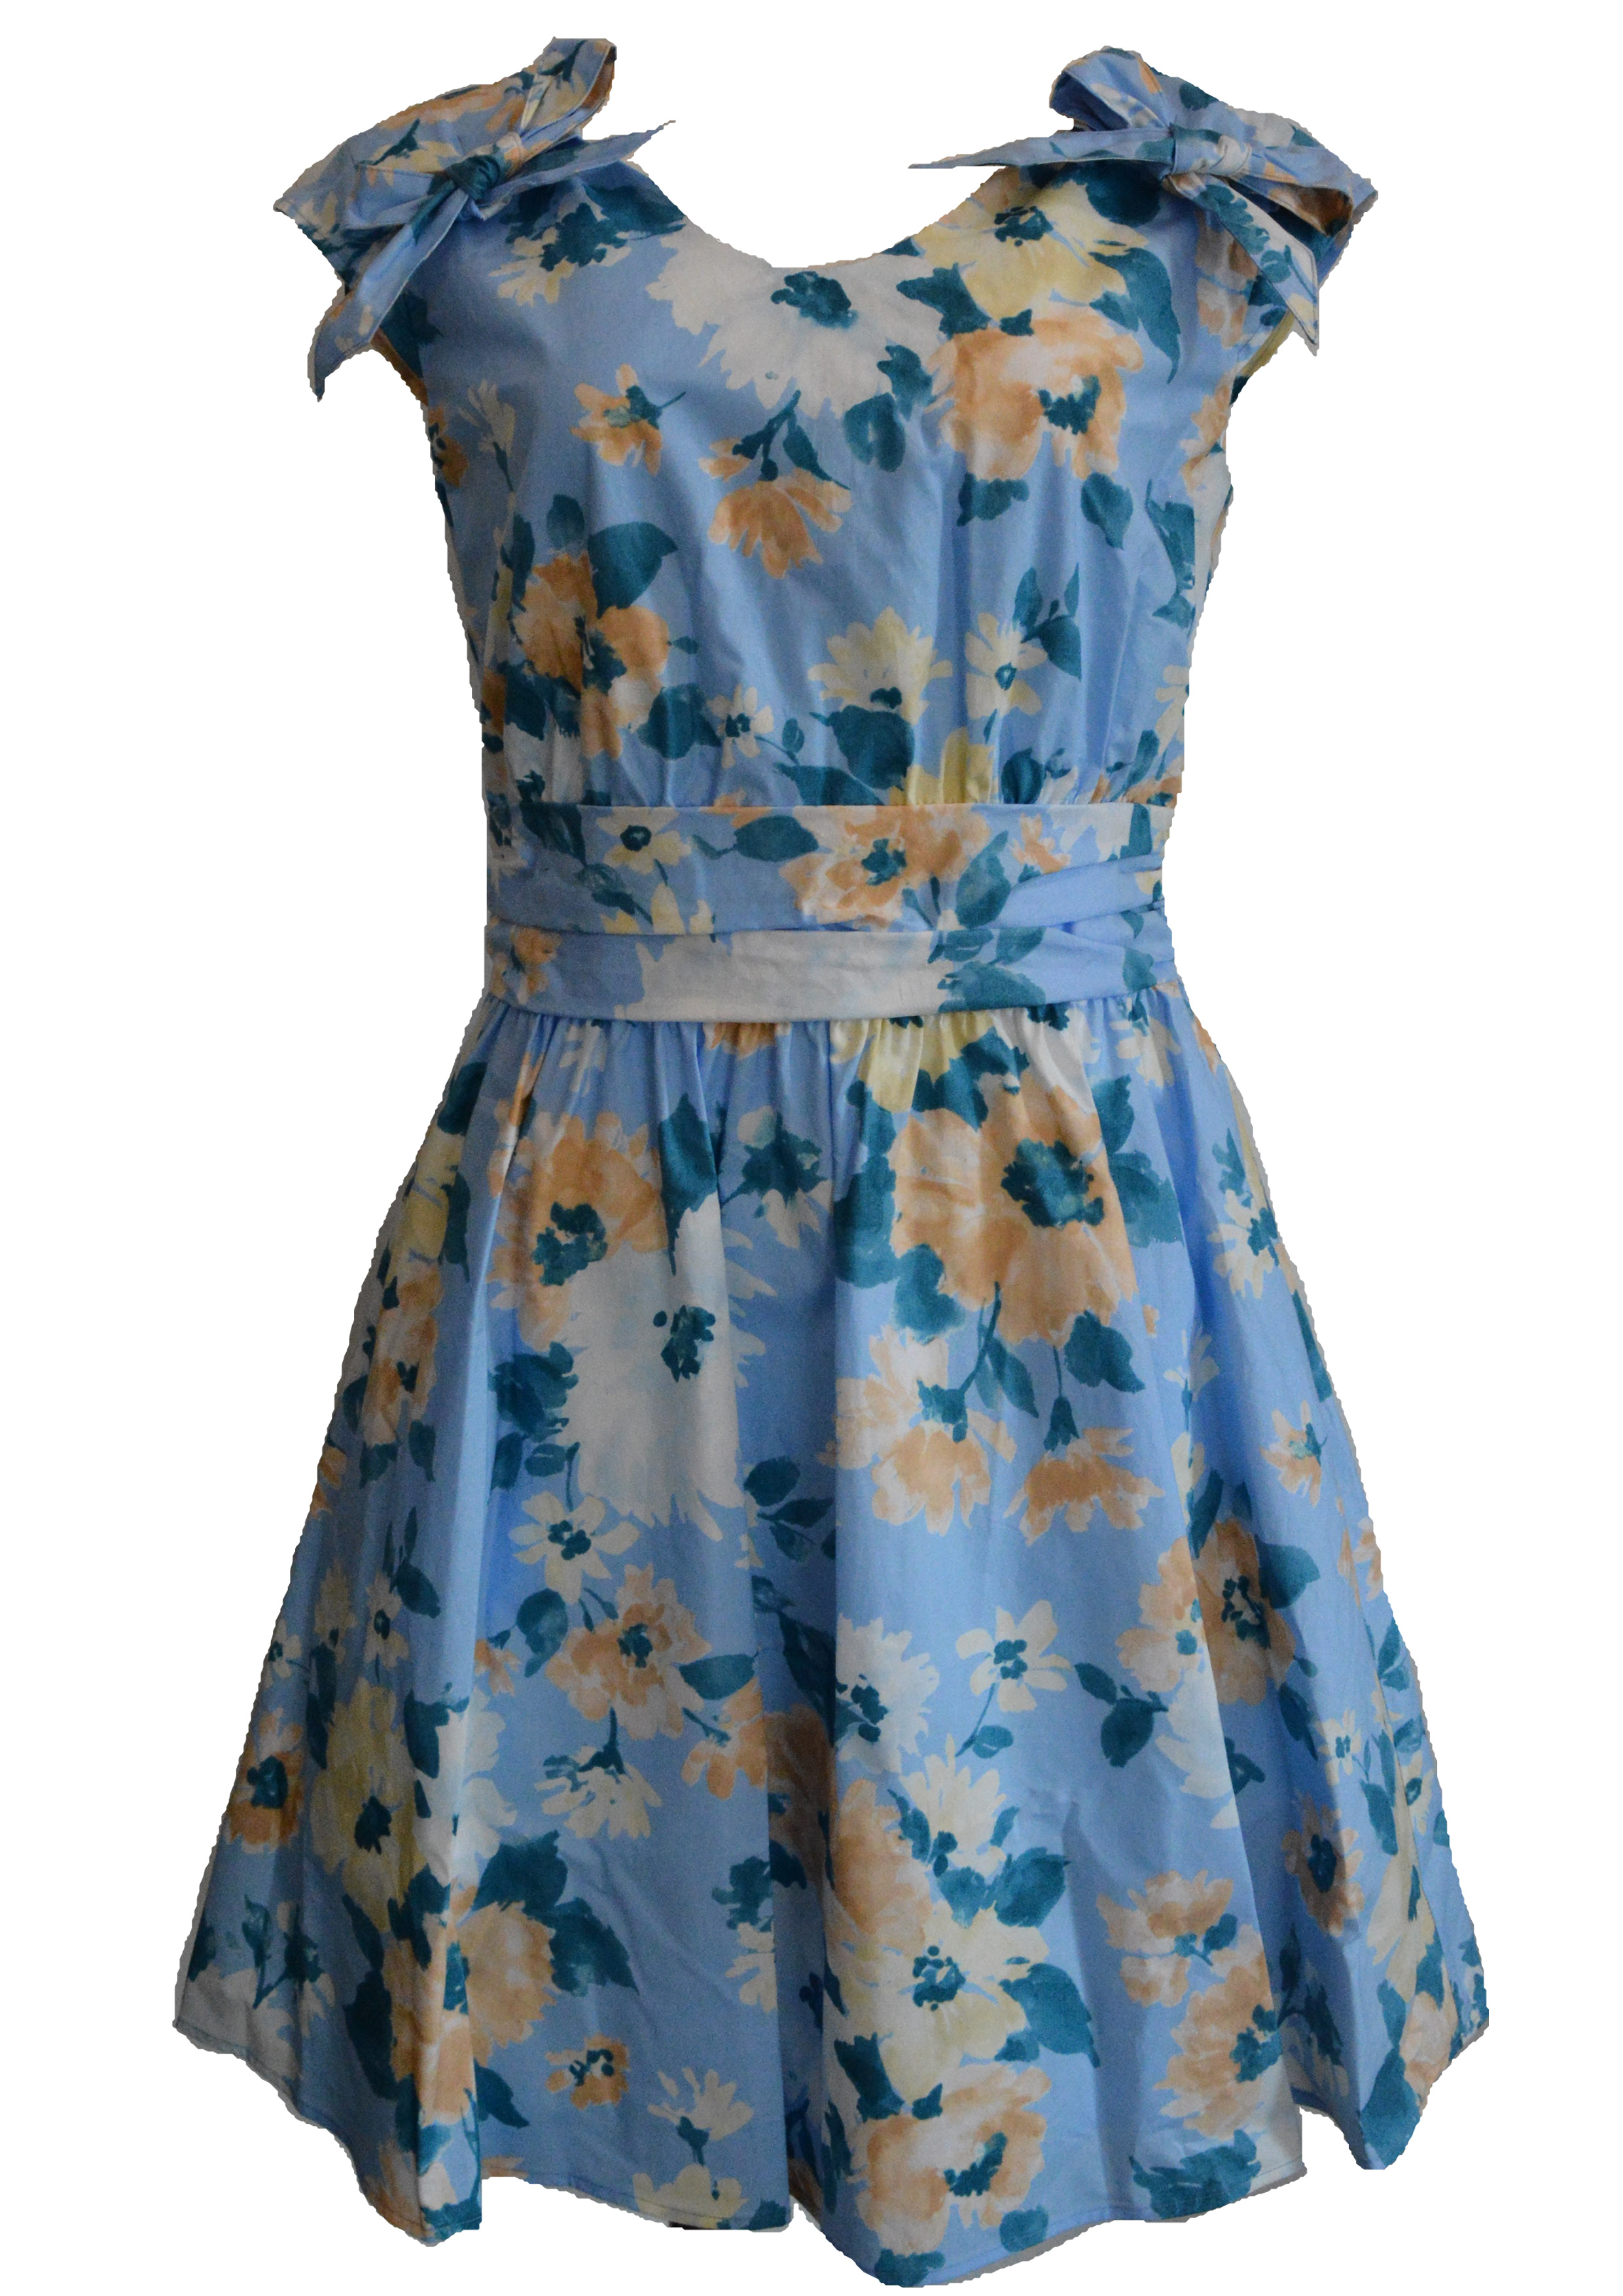 【SALE】【selva secreta】FRENCH FLOWER DRESS(light-blue)